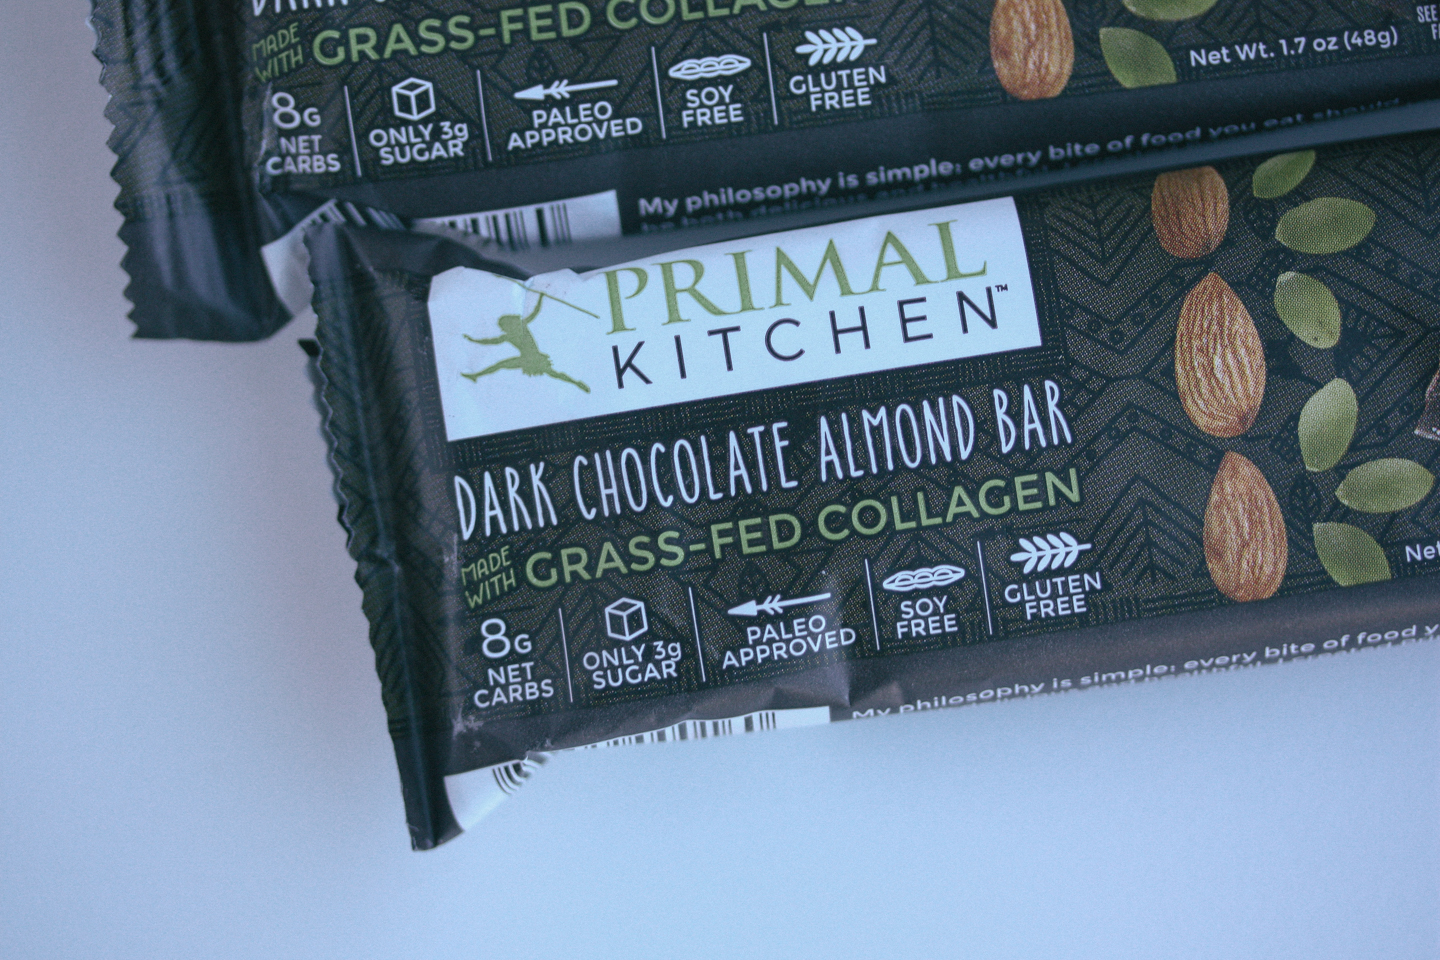 Primal Kitchen's Dark Chocolate Almond Bar